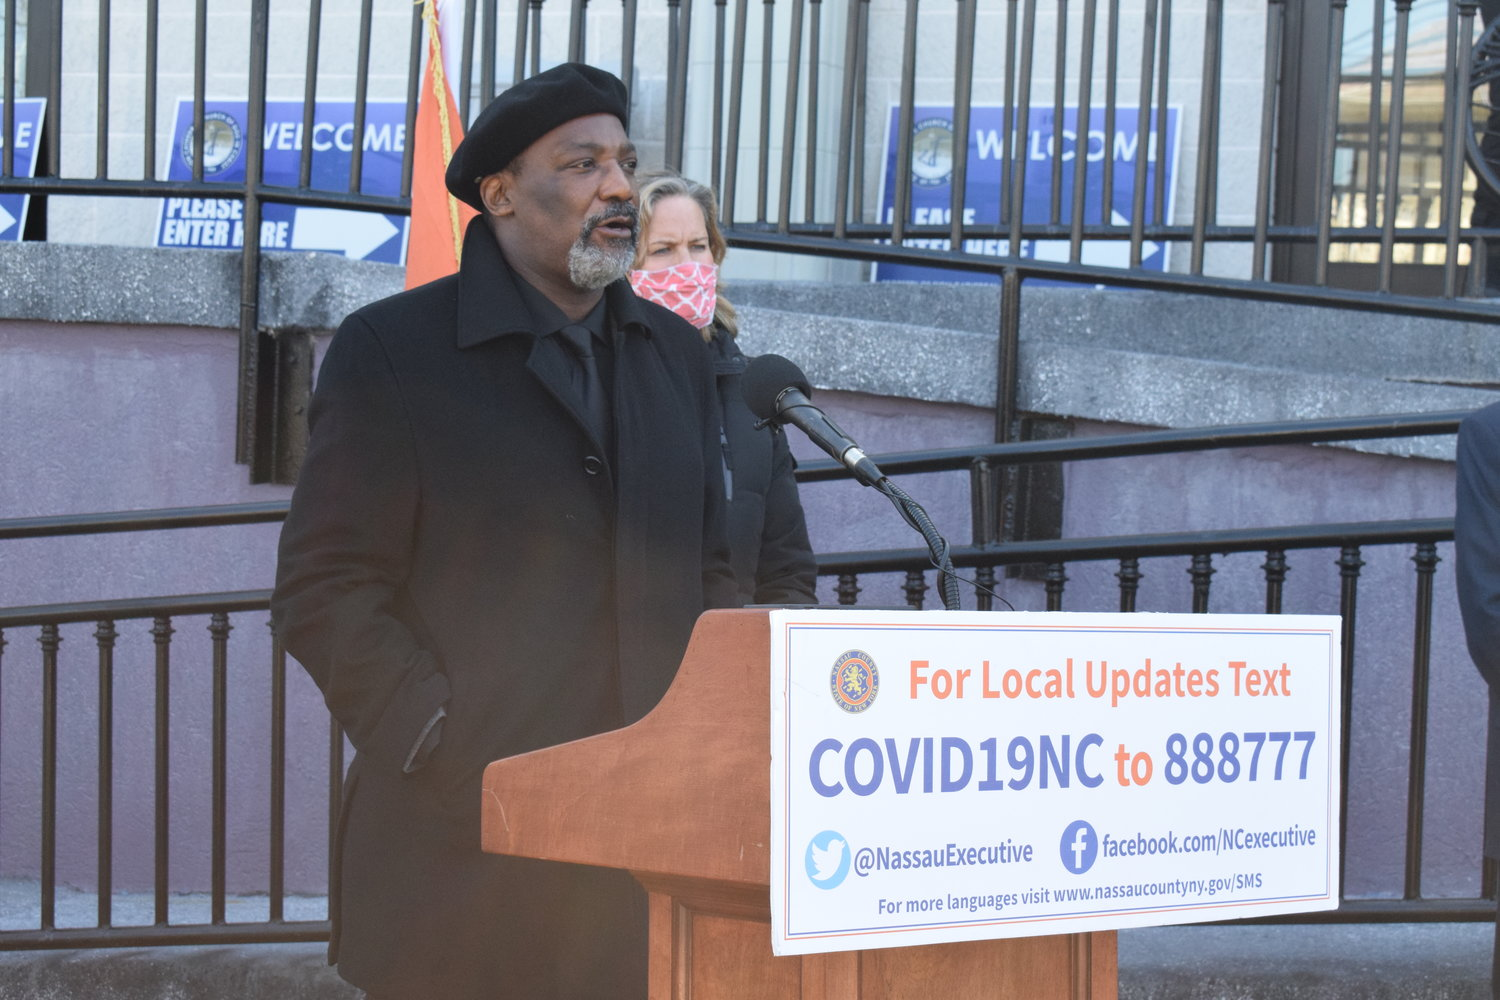 Bishop Frank A. White spoke about the importance of community leaders joining to help the most vulnerable residents get vaccinated against Covid-19.